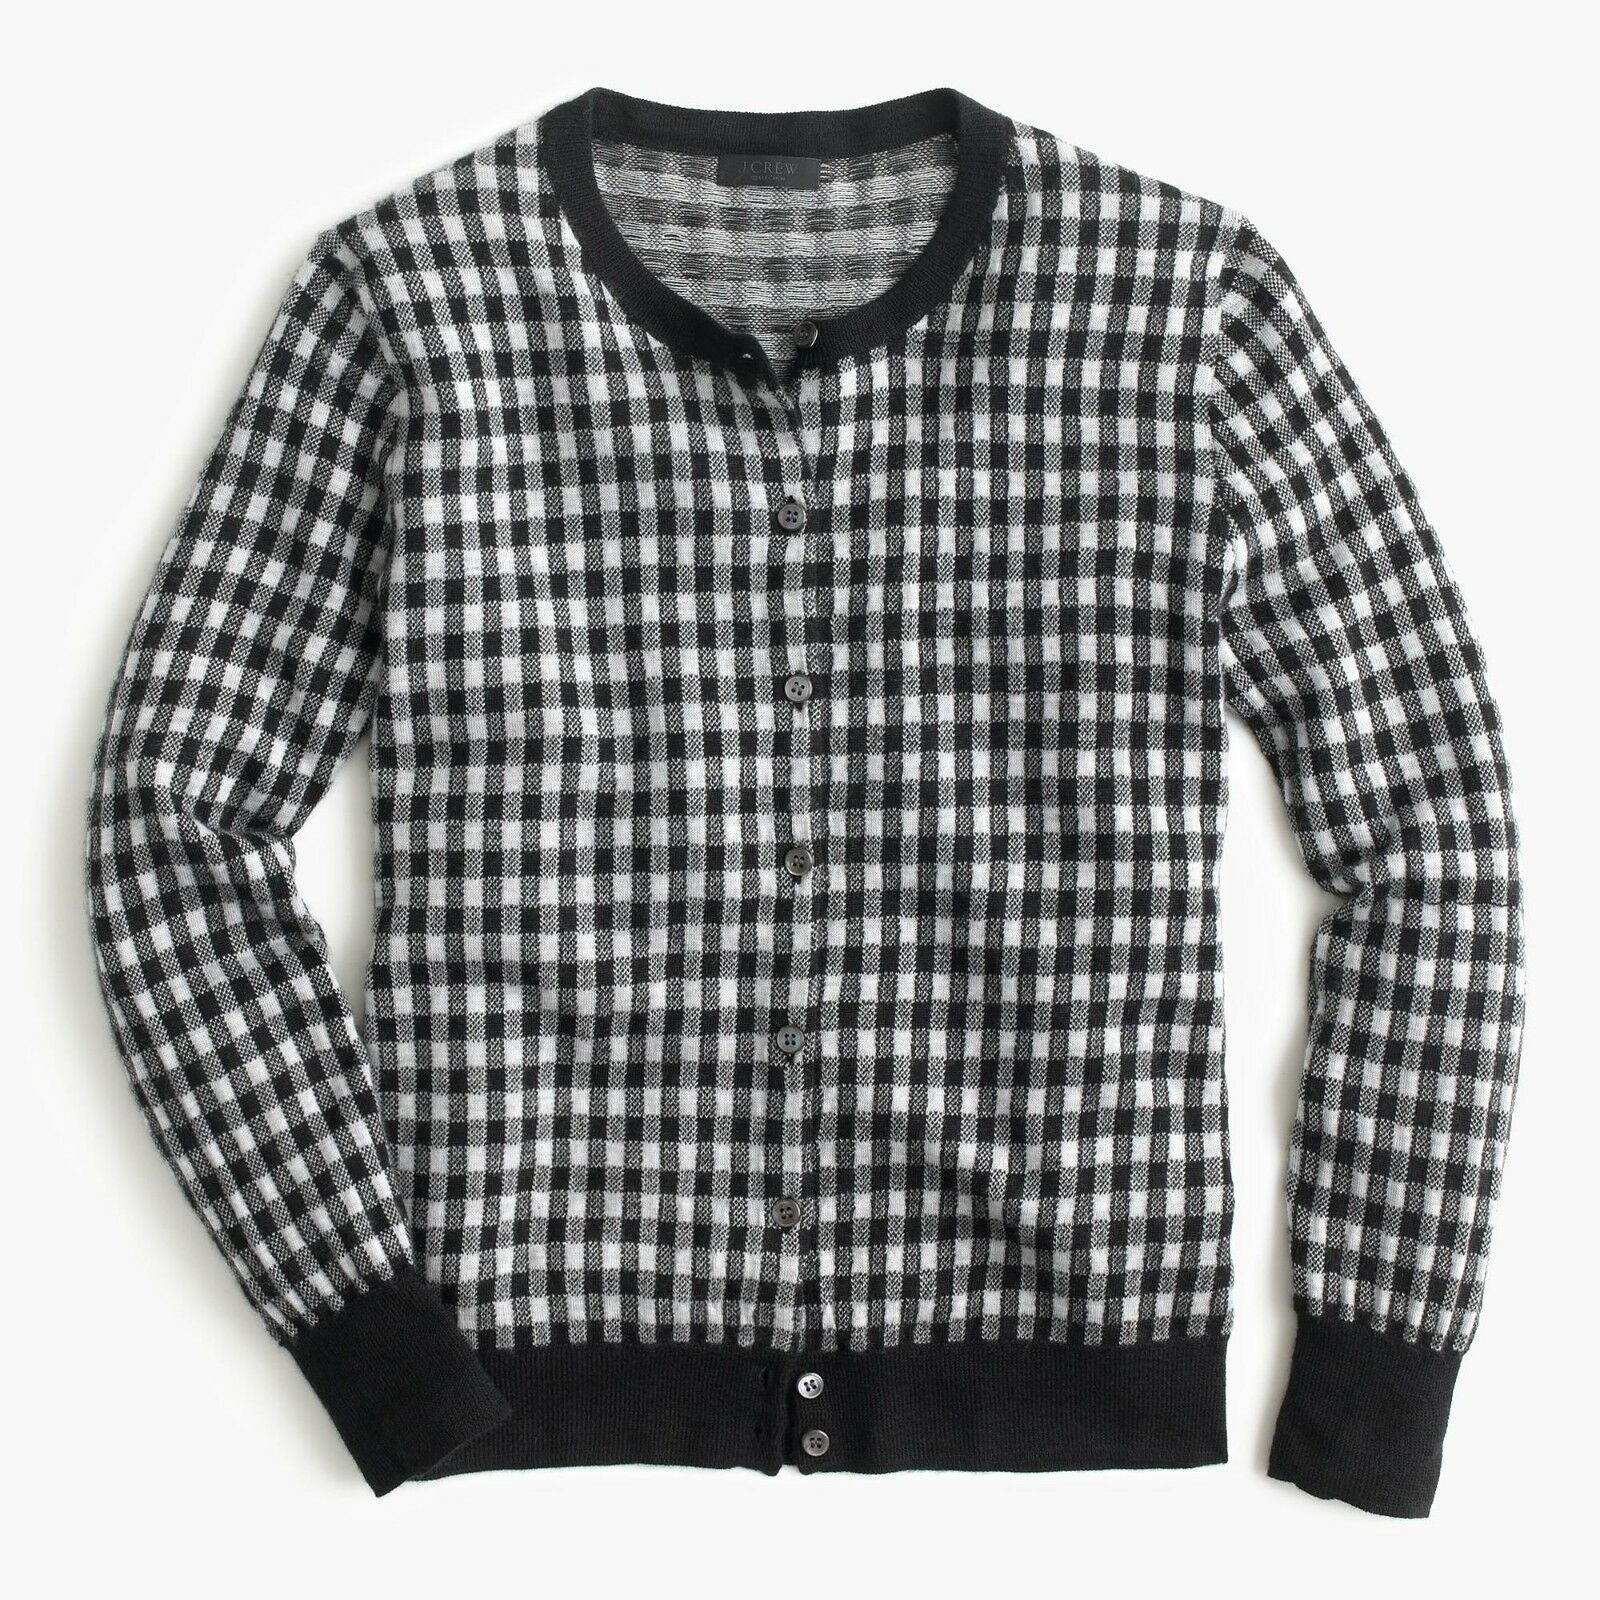 J.CREW COLLECTION Italian featherweight cashmere cardigan sweater in gingham S